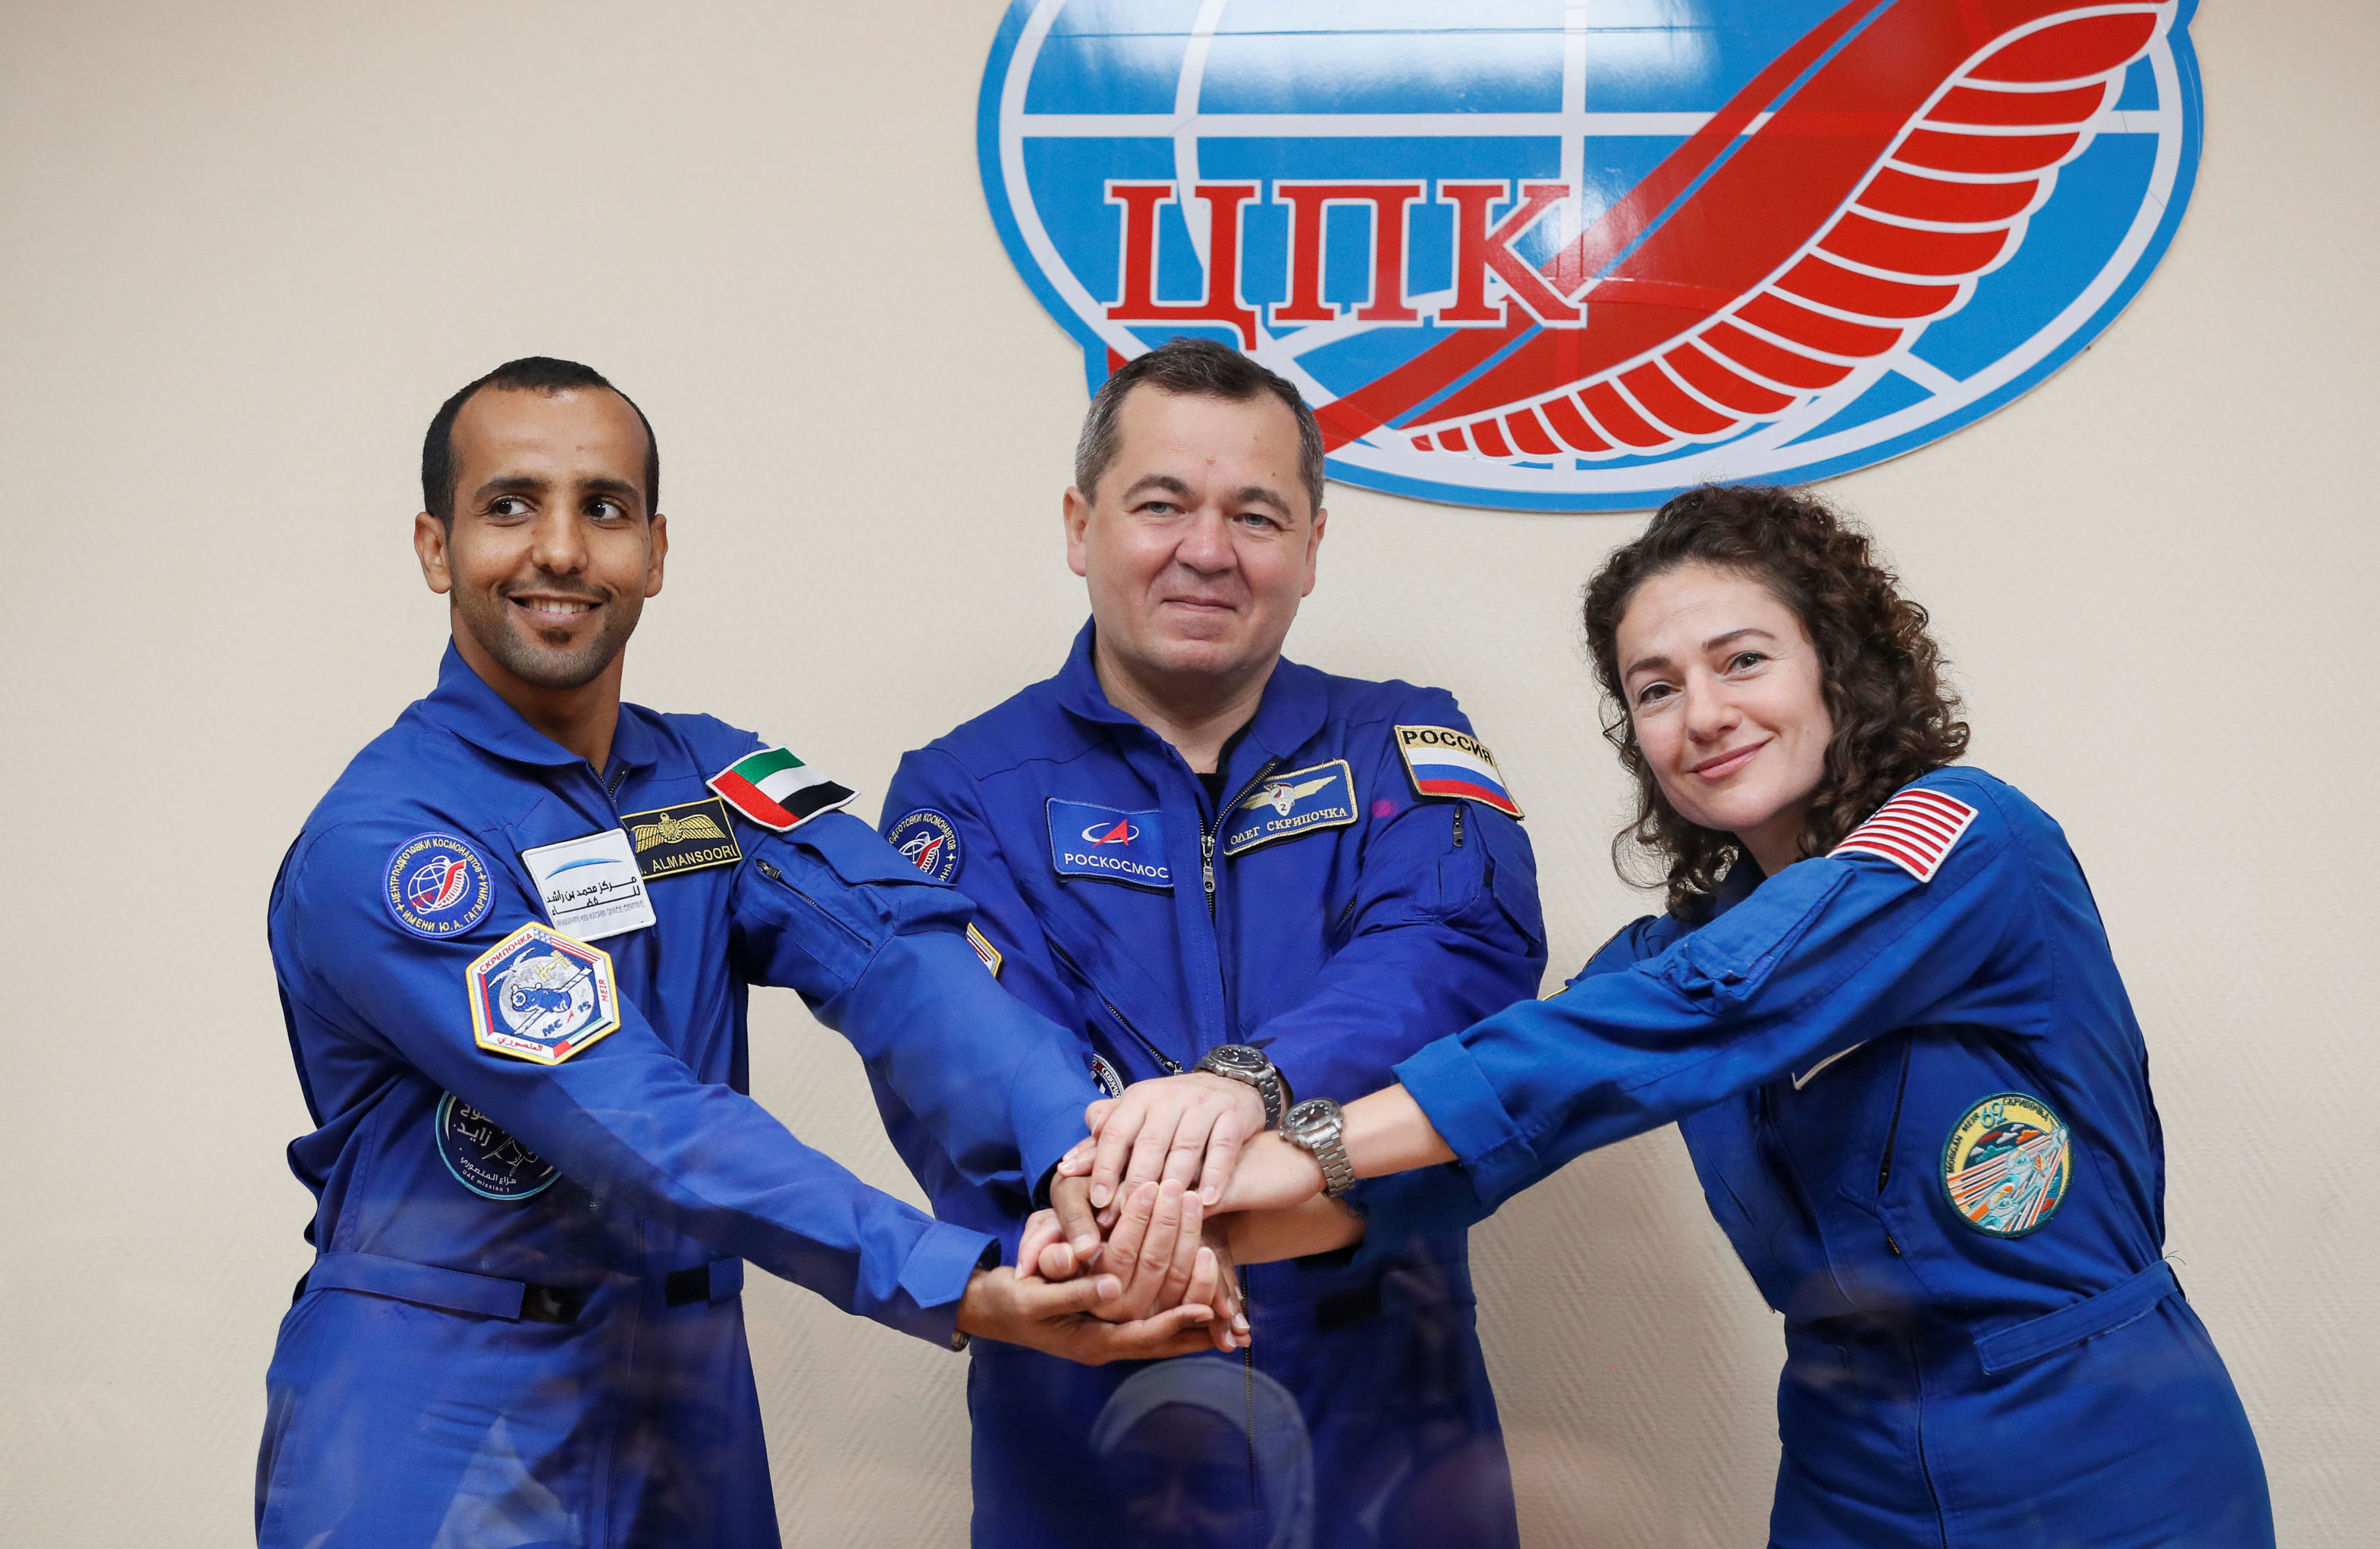 Crew members Jessica Meir of the U.S., Oleg Skripochka of Russia and Hazzaa Ali Almansoori of United Arab Emirates pose for a picture behind a glass wall during a final news conference ahead of their mission to the International Space Station (ISS) in Baikonur, Kazakhstan September 24, 2019